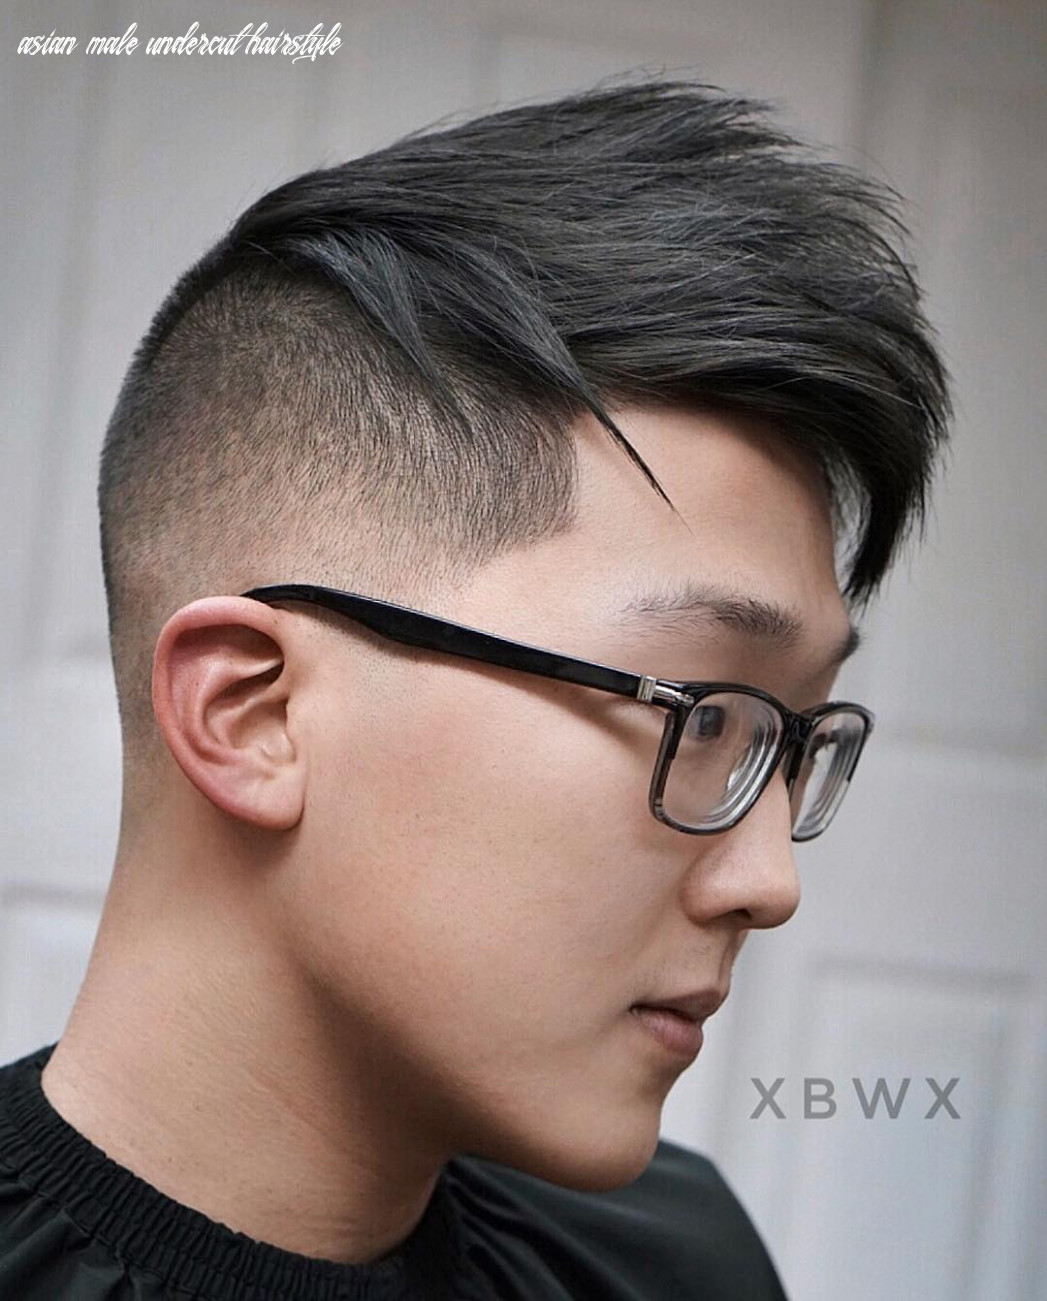 12 Best Hairstyles For Asian Men (12 Styles)